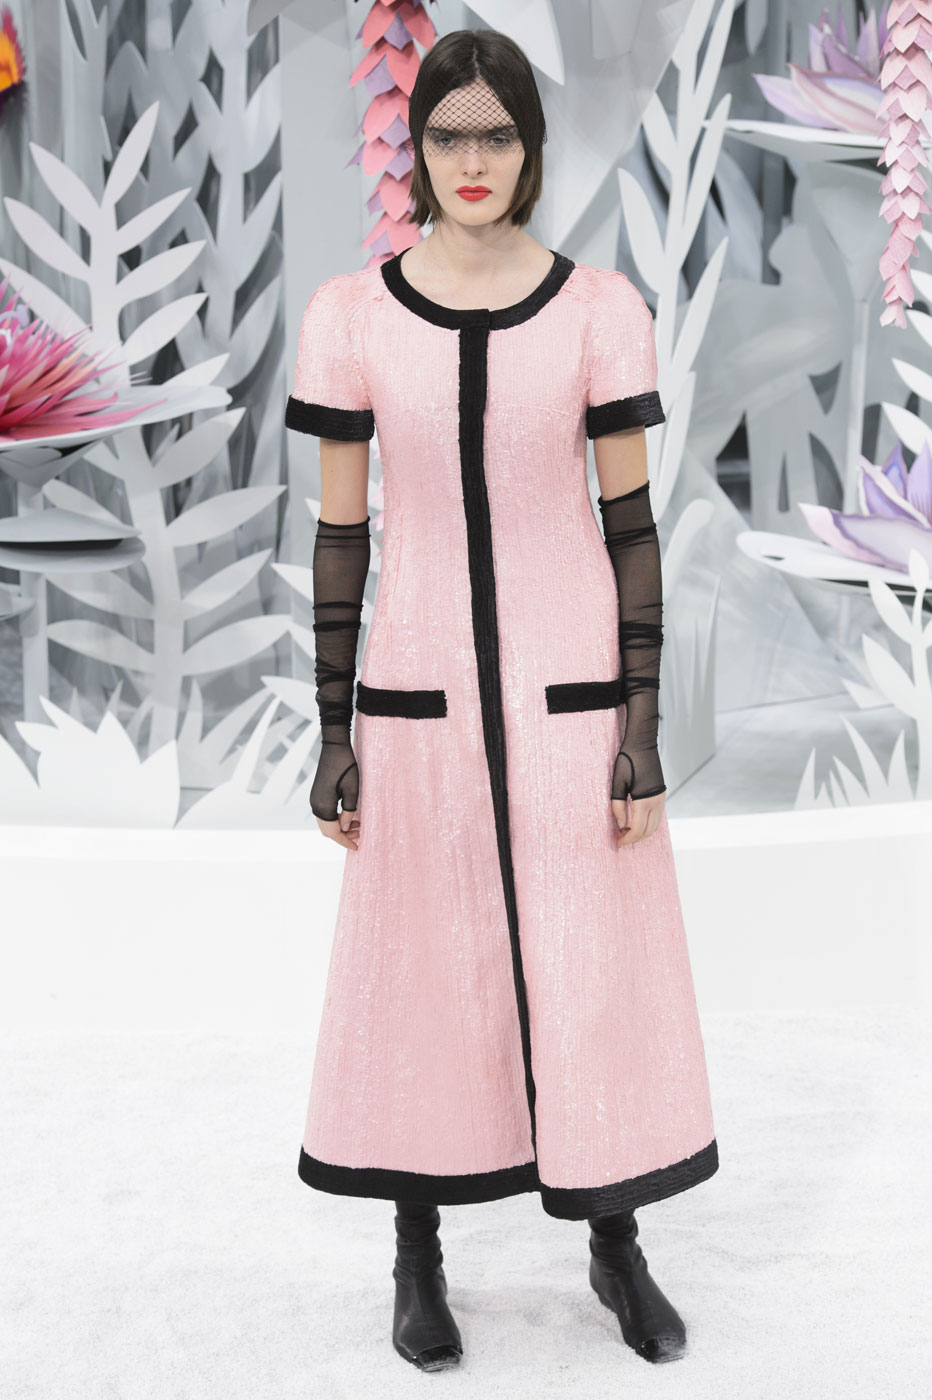 Chanel-fashion-runway-show-haute-couture-paris-spring-summer-2015-the-impression-115